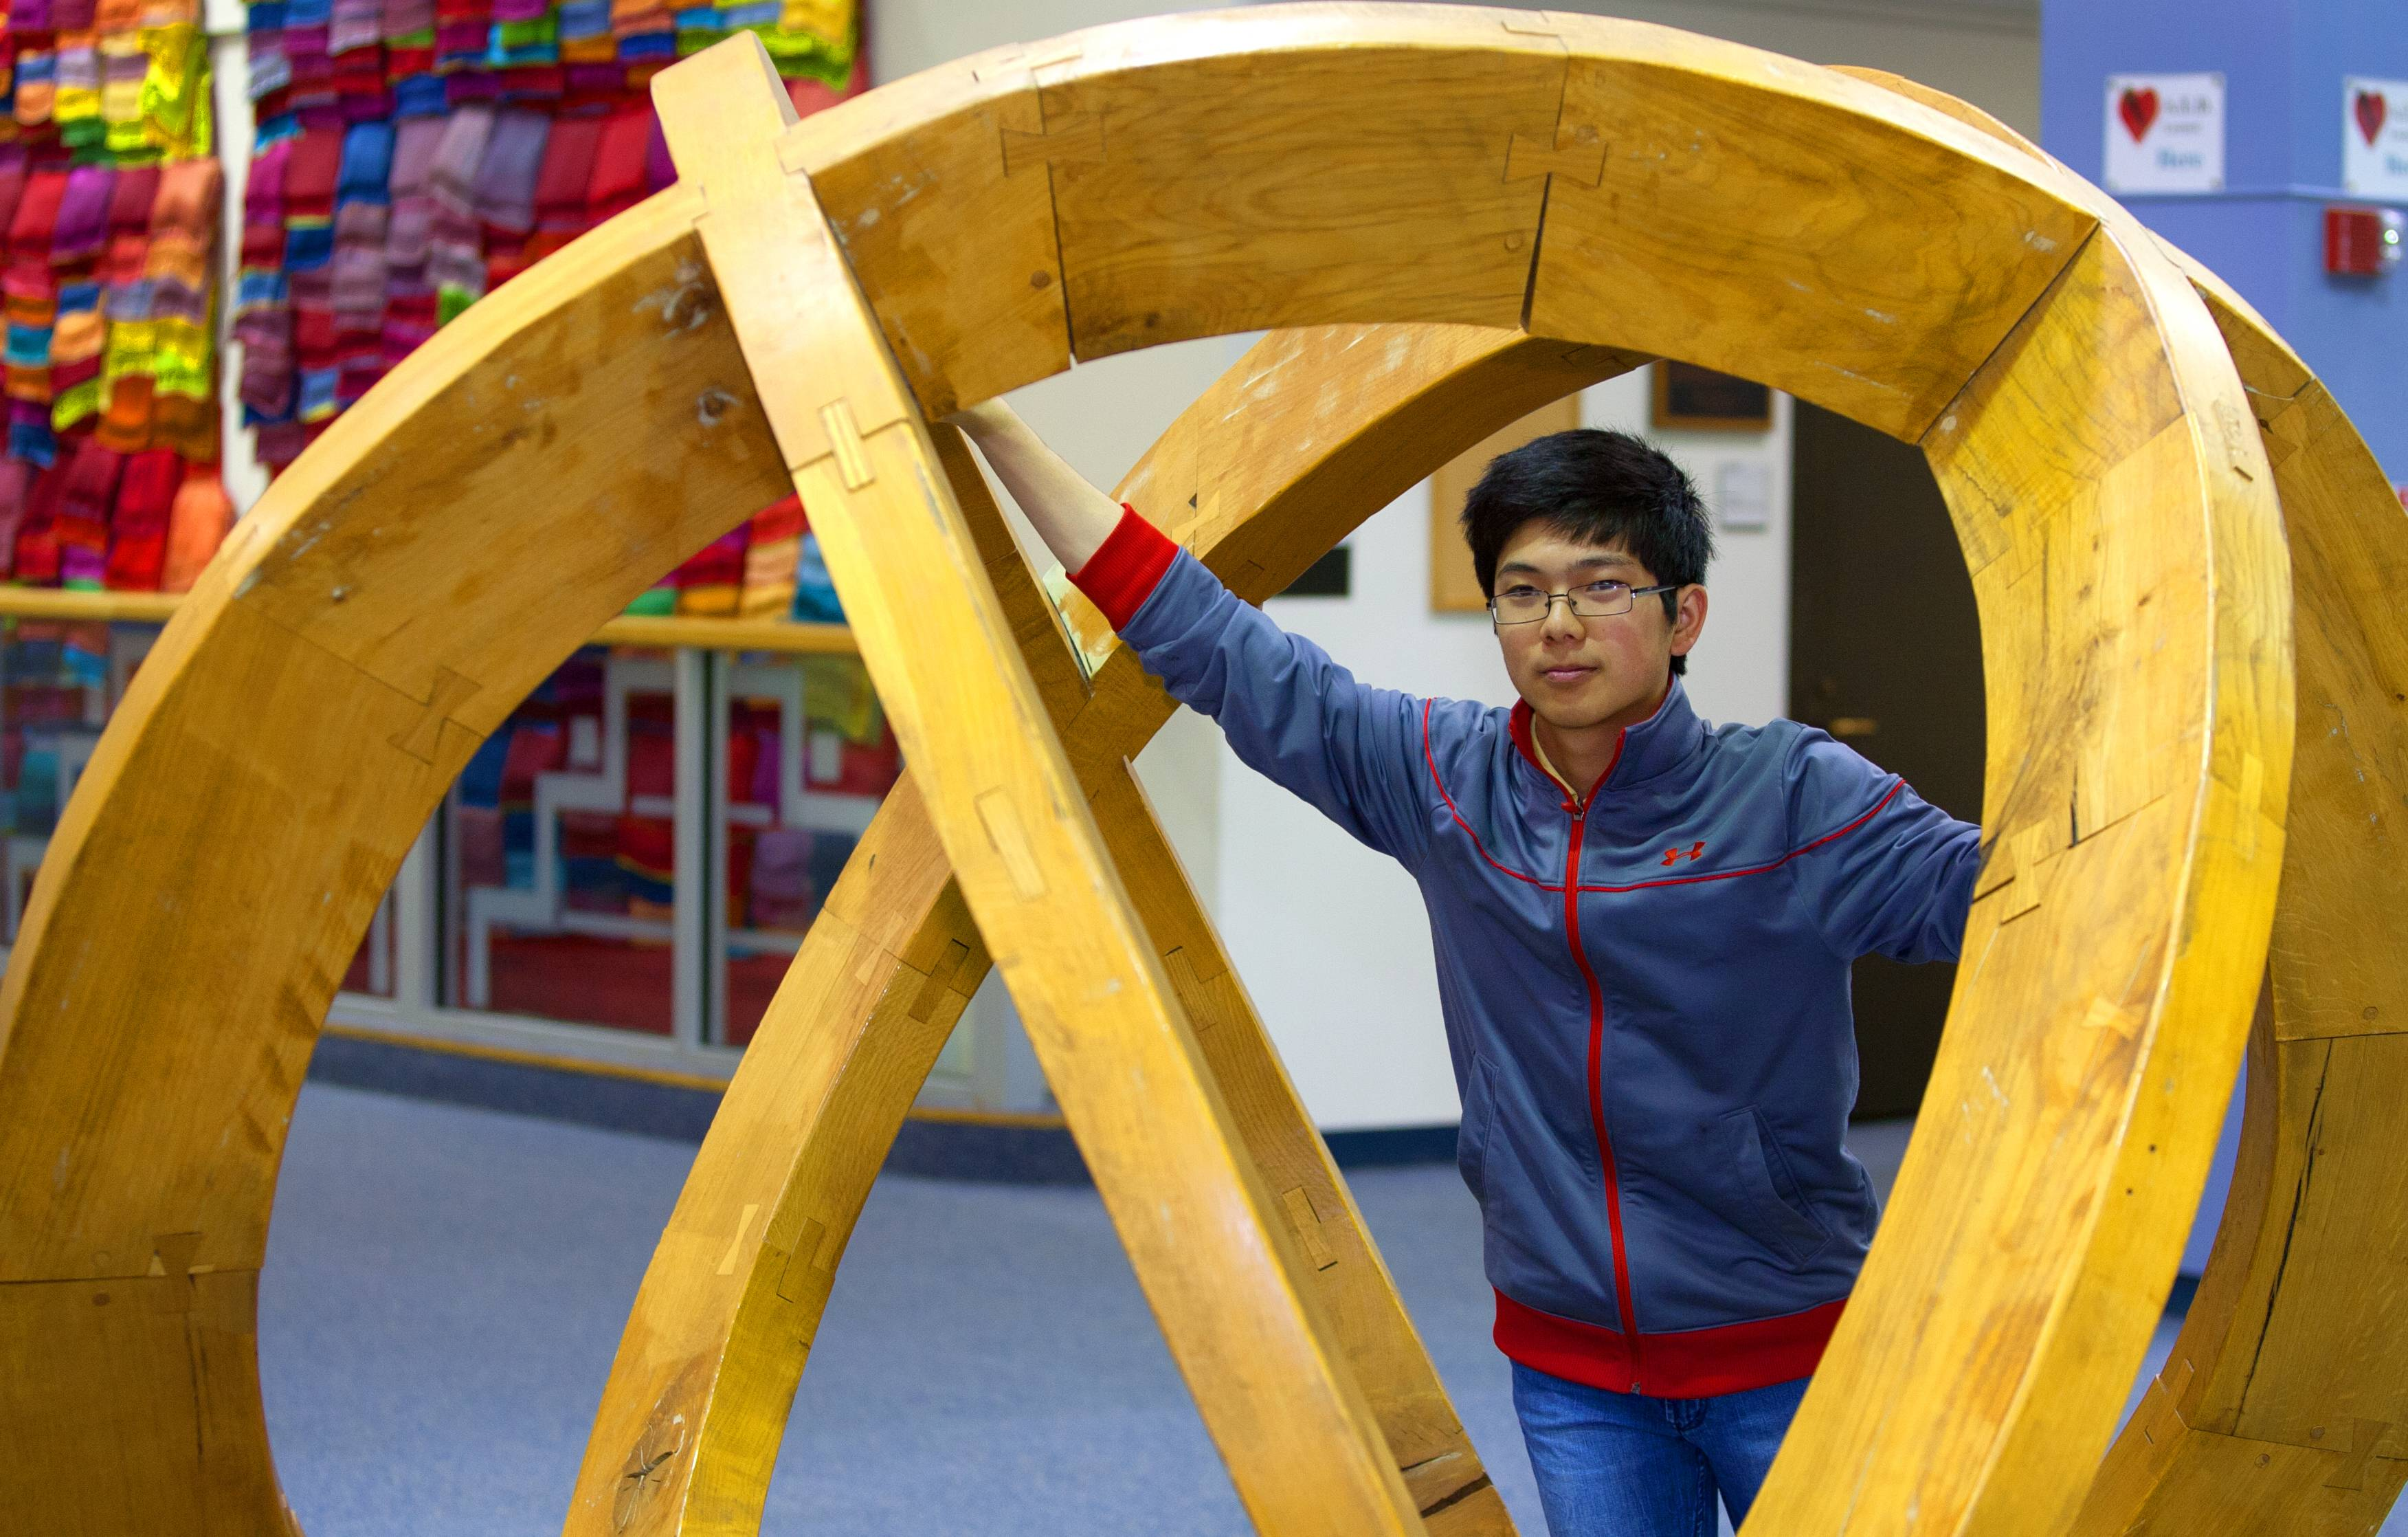 Timothy Zhou of Bolingbrook is a top chess player and math student at the Illinois Mathematics and Science Academy, but his passion is playing the piano, for which he earned a National YoungArts Foundation honorable mention award. He says the three seemingly diverse disciplines have some things in common.